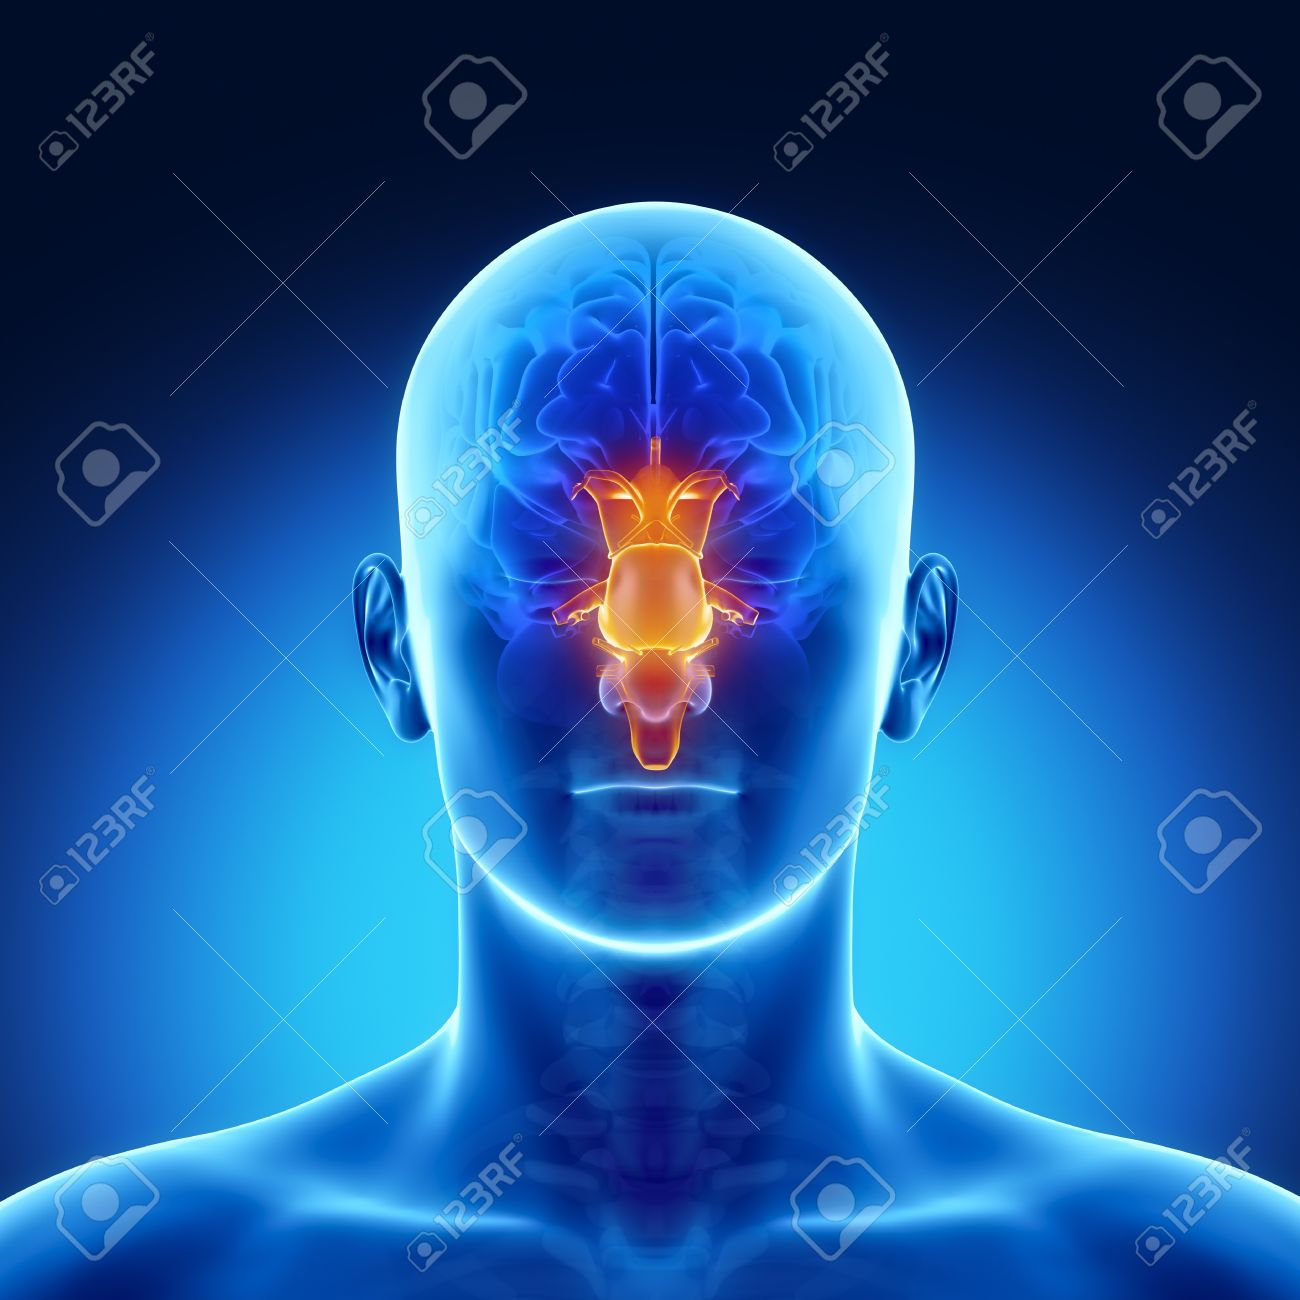 Male Anatomy Of Human Brain Stem In X-ray View Stock Photo, Picture ...